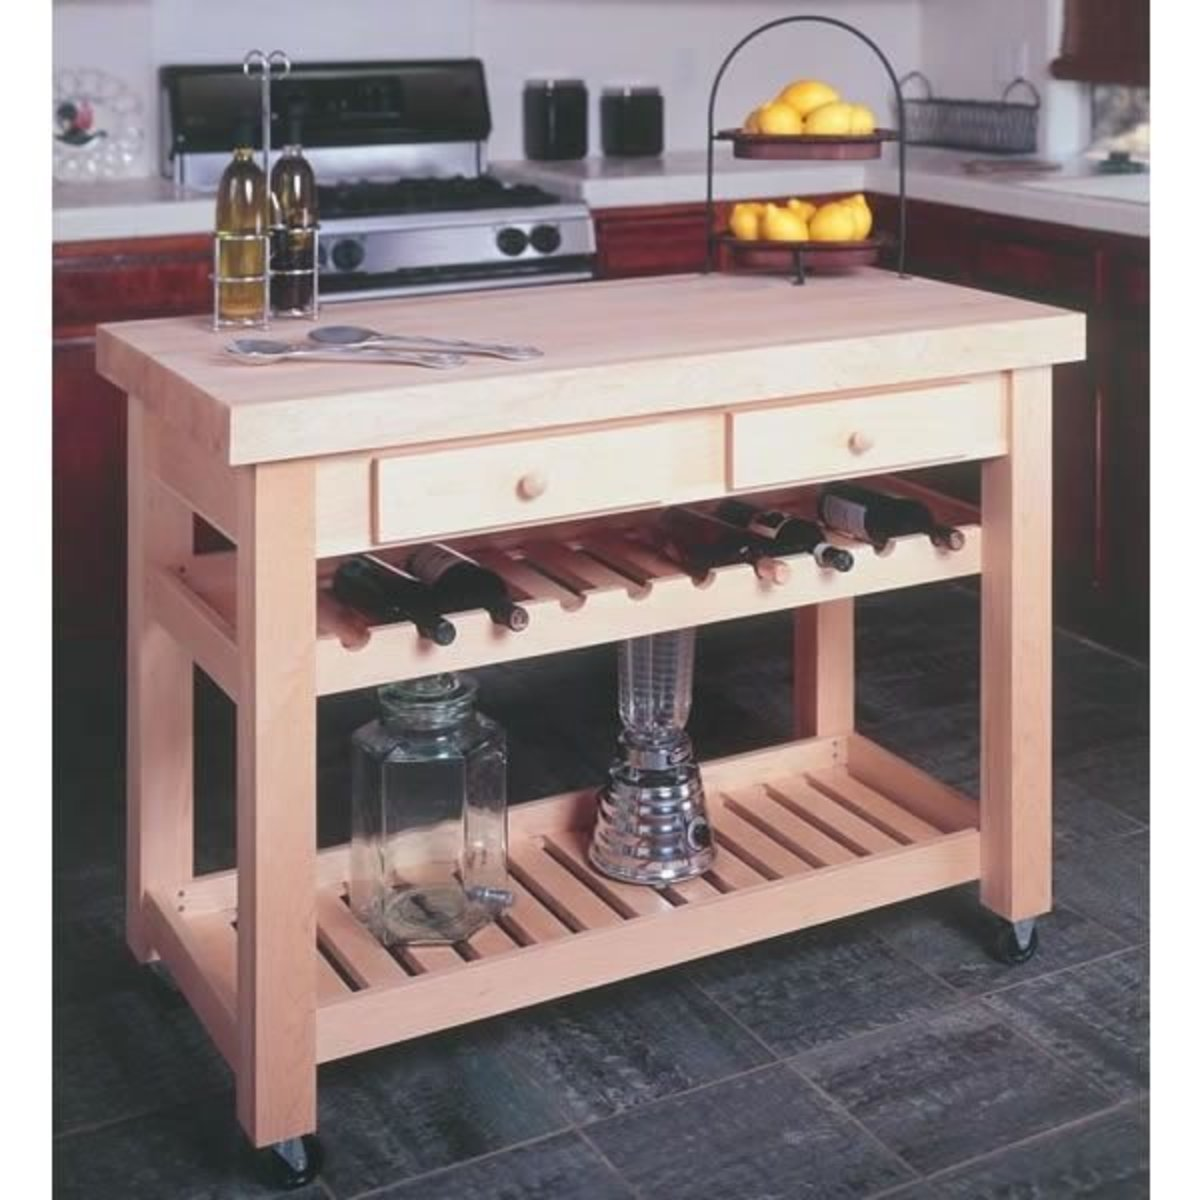 Kitchen Design Plans With Island: Woodworking Project Paper Plan For Kitchen Island